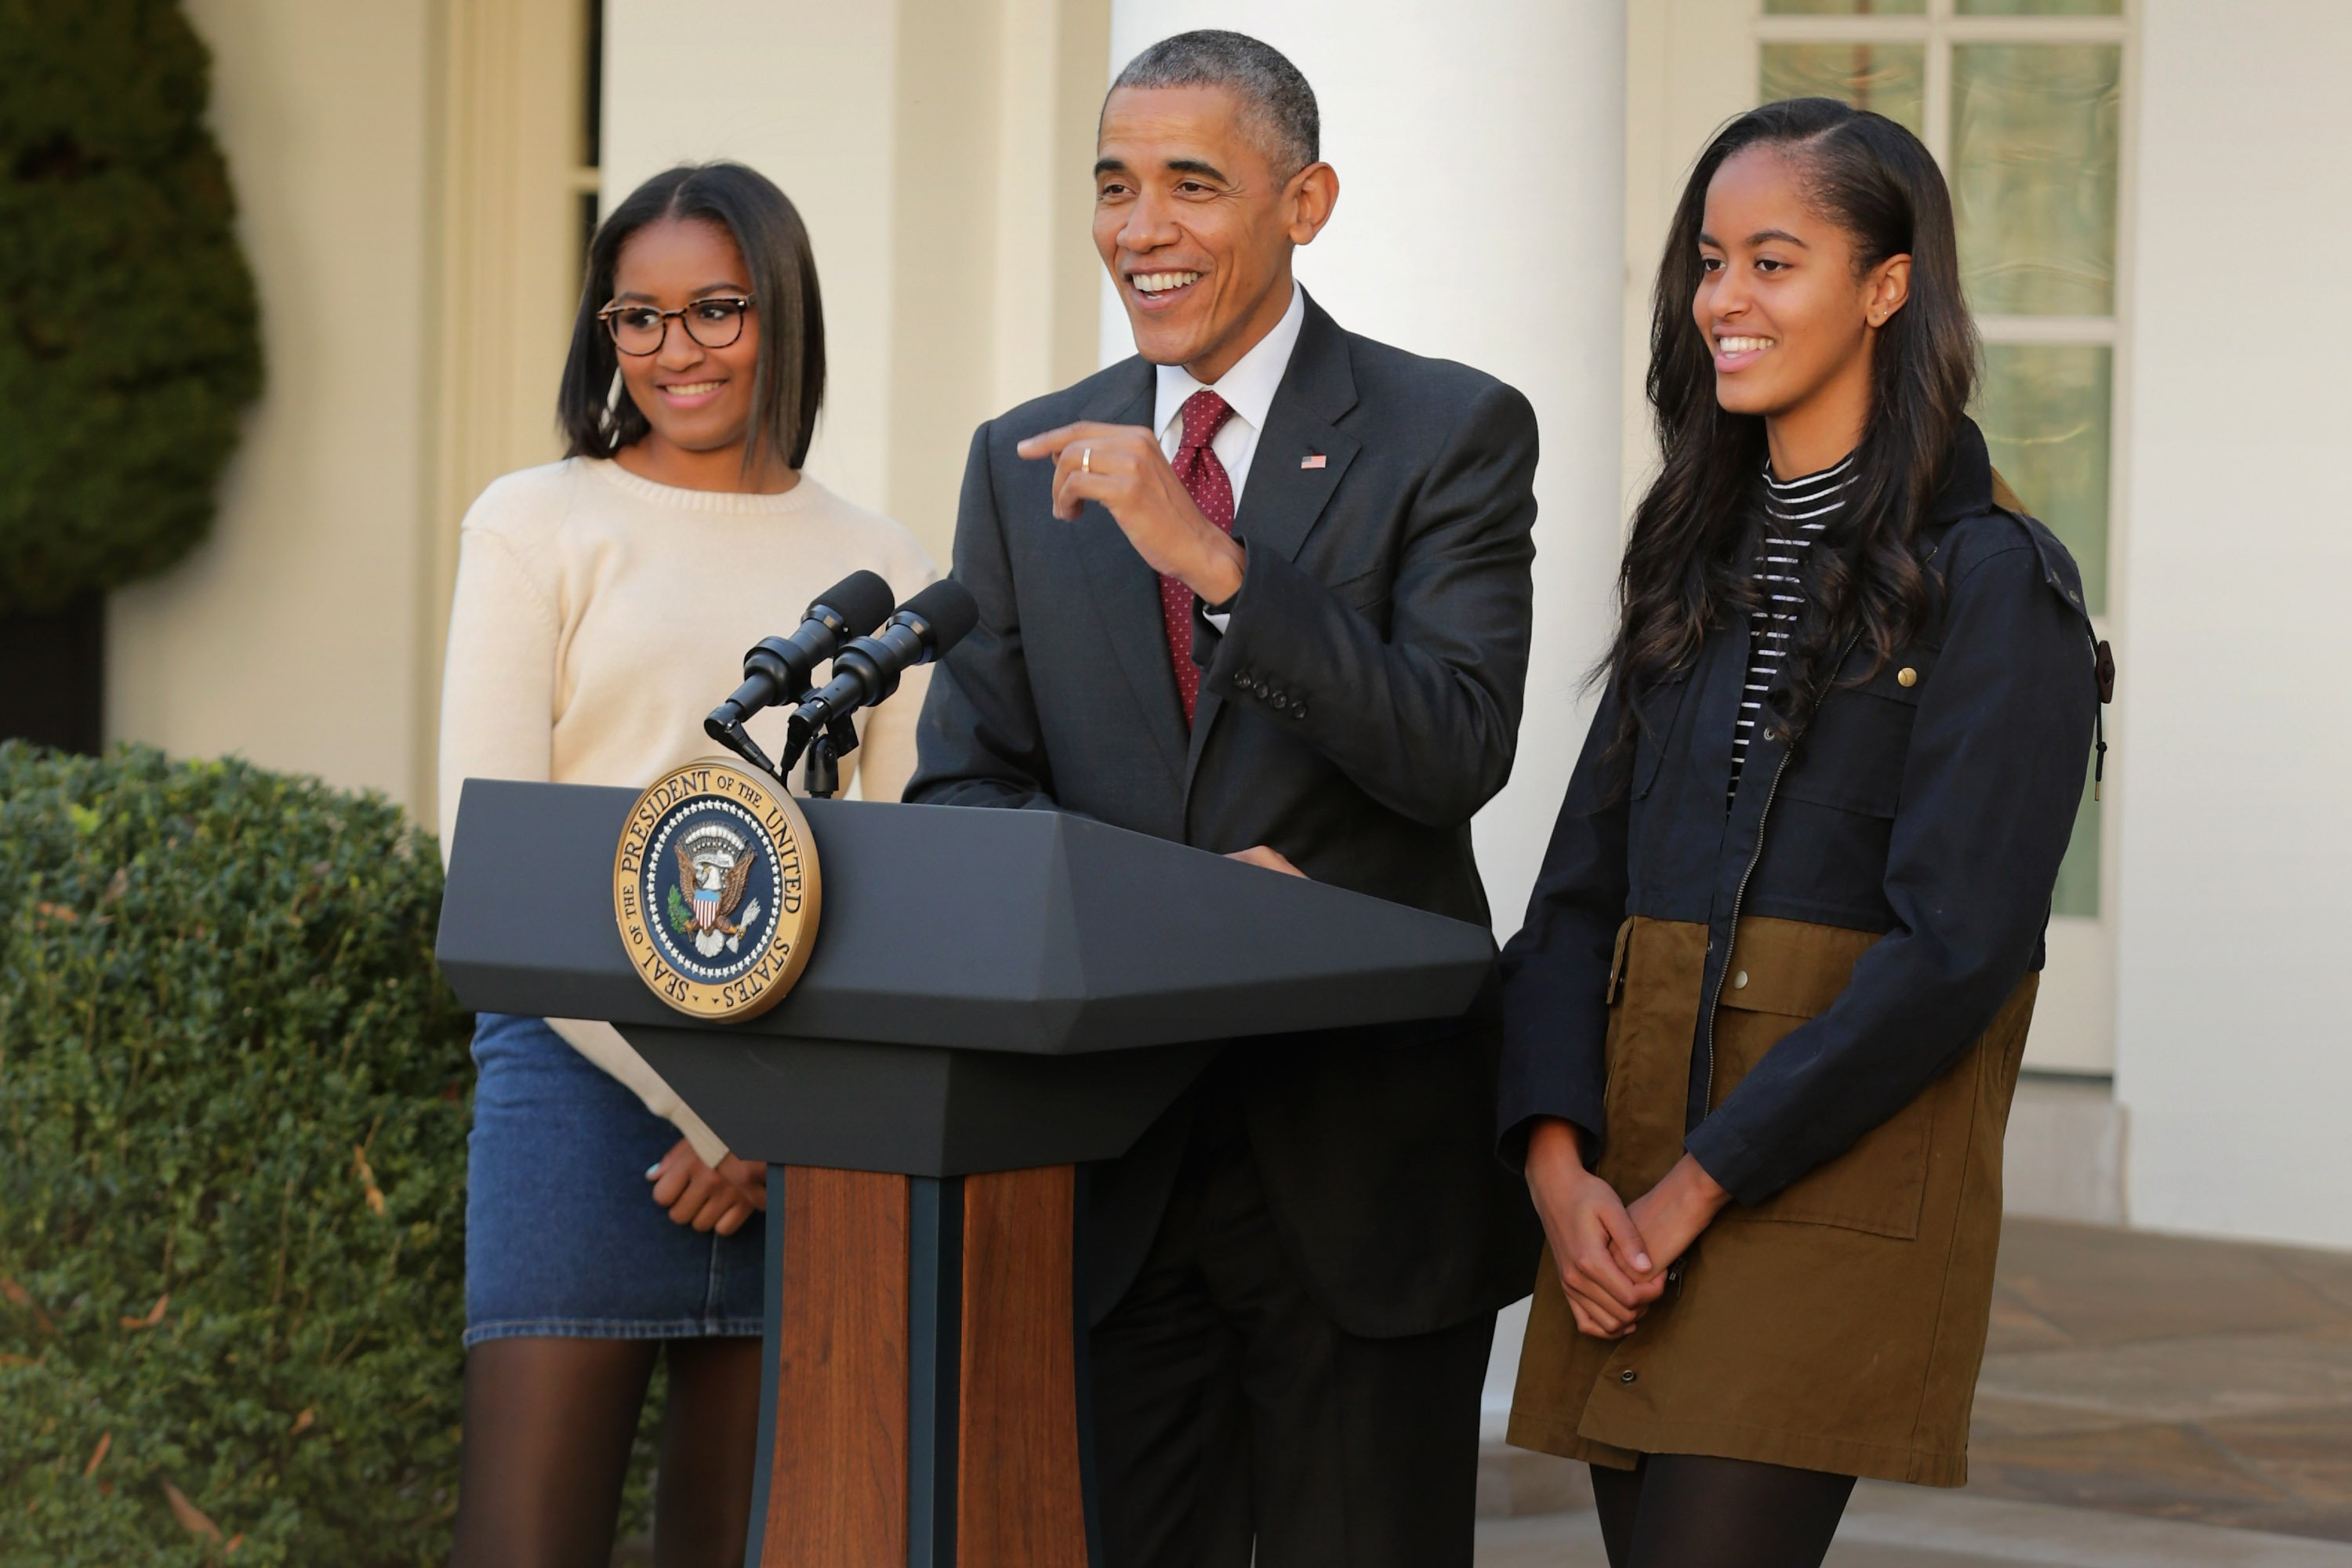 Former president Barack Obama delivers remarks with his daughters Sasha and Malia during the annual turkey pardoning ceremony in the Rose Garden at the White House November 25, 2015. | Photo: GettyImages